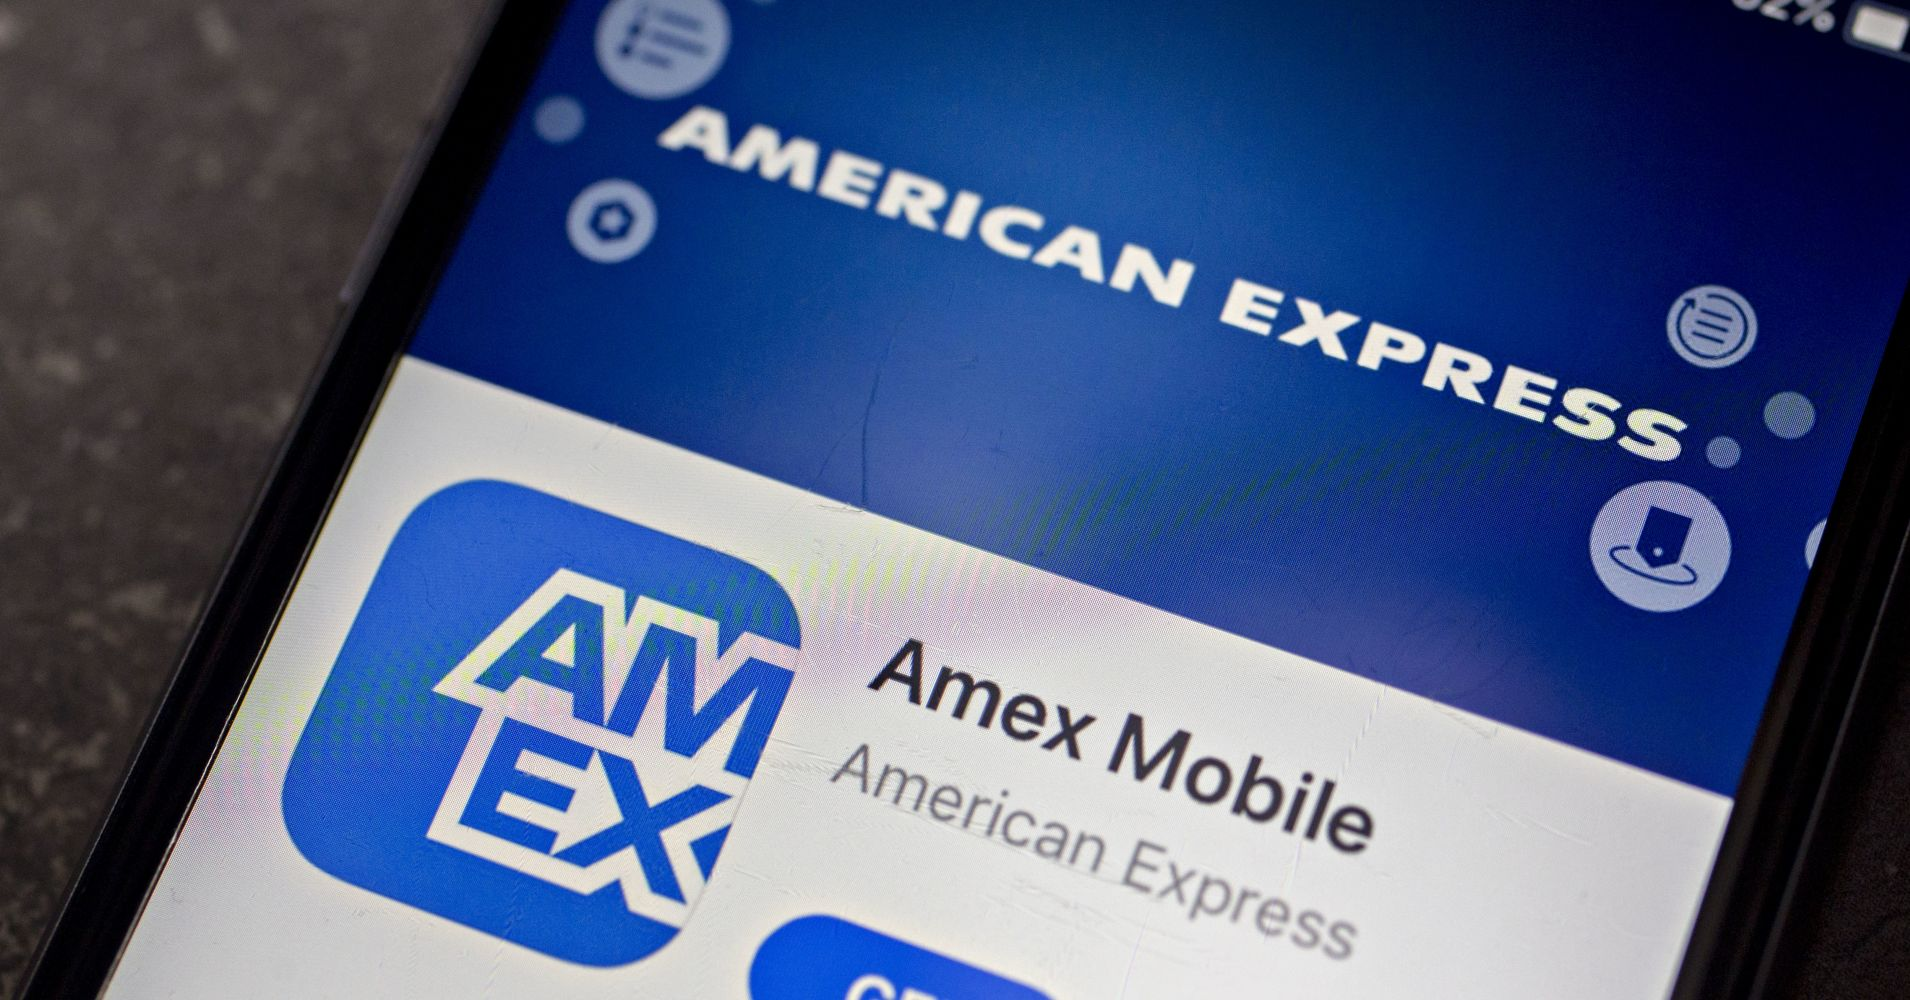 The American Express Co. application is displayed in the App Store on an Apple Inc. iPhone in an arranged photograph taken in Washington, D.C.